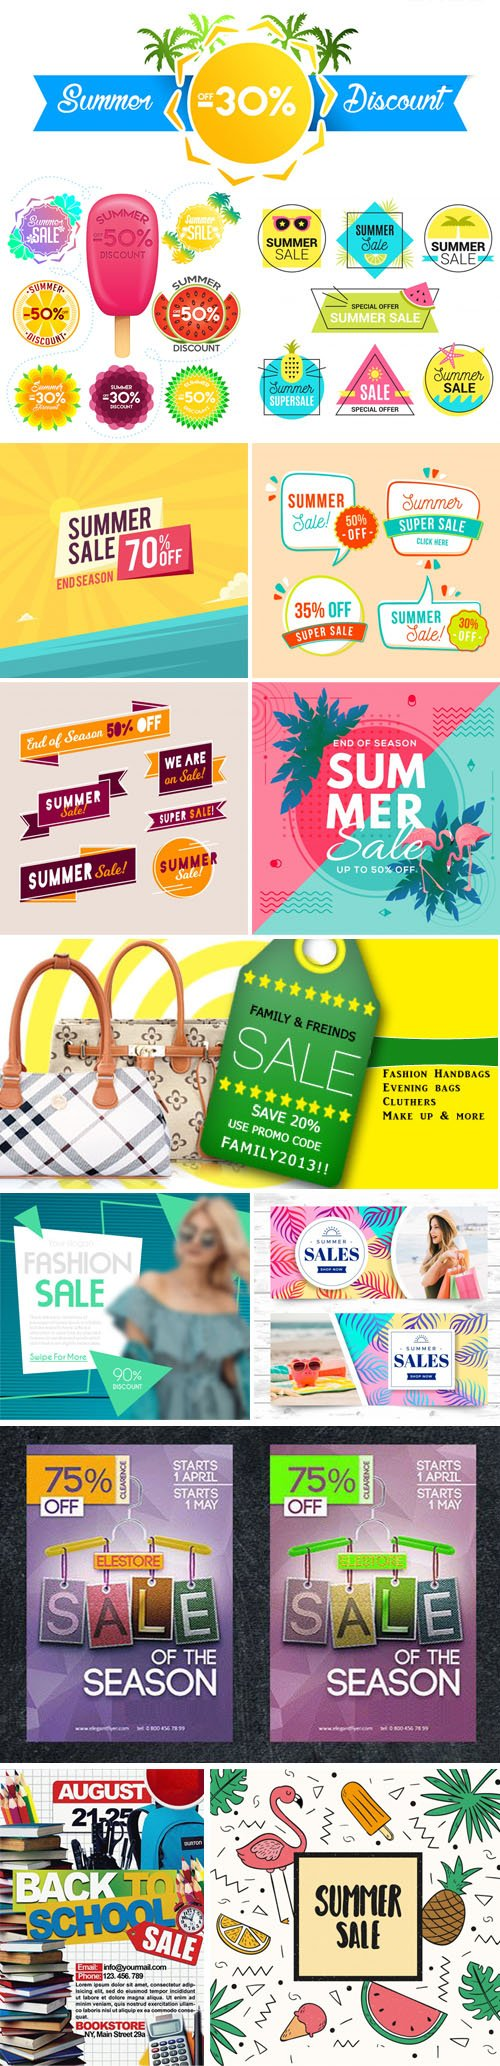 12 Hot Summer Sale/Discount Advertising [Ai/EPS/PSD]